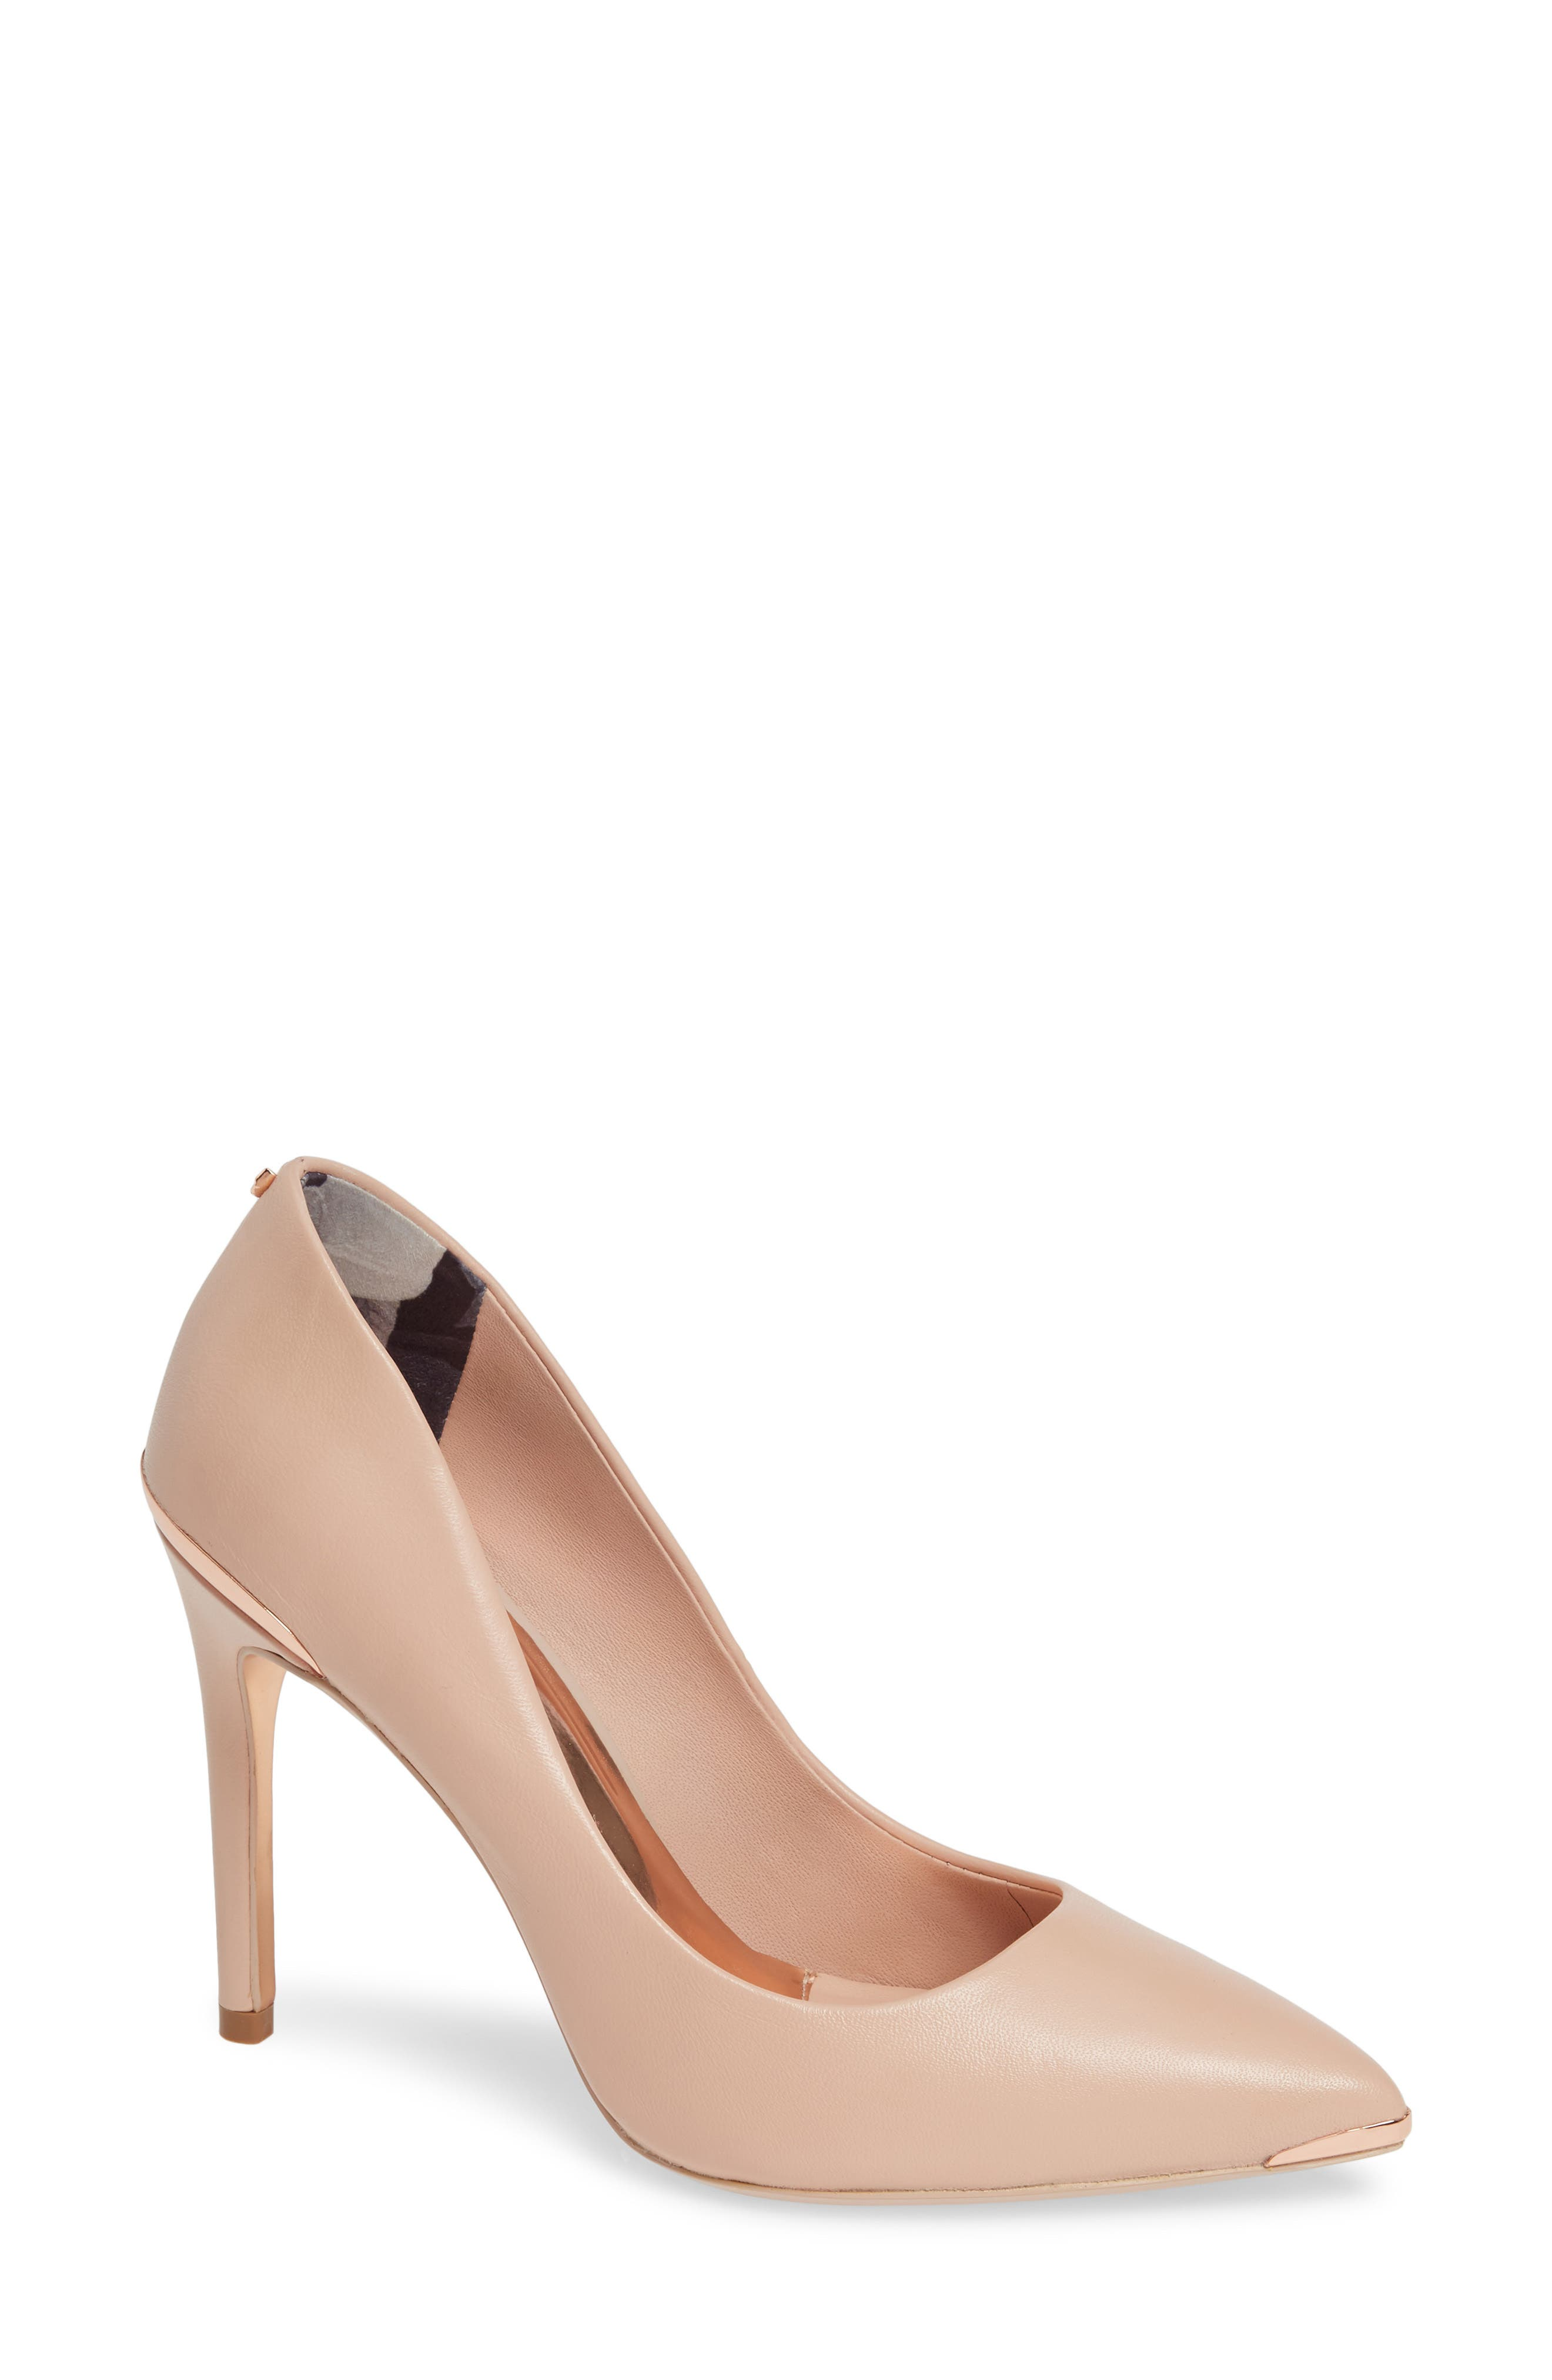 Ted  Baker Damens's Schuhes  Ted  Nordstrom 9917e8